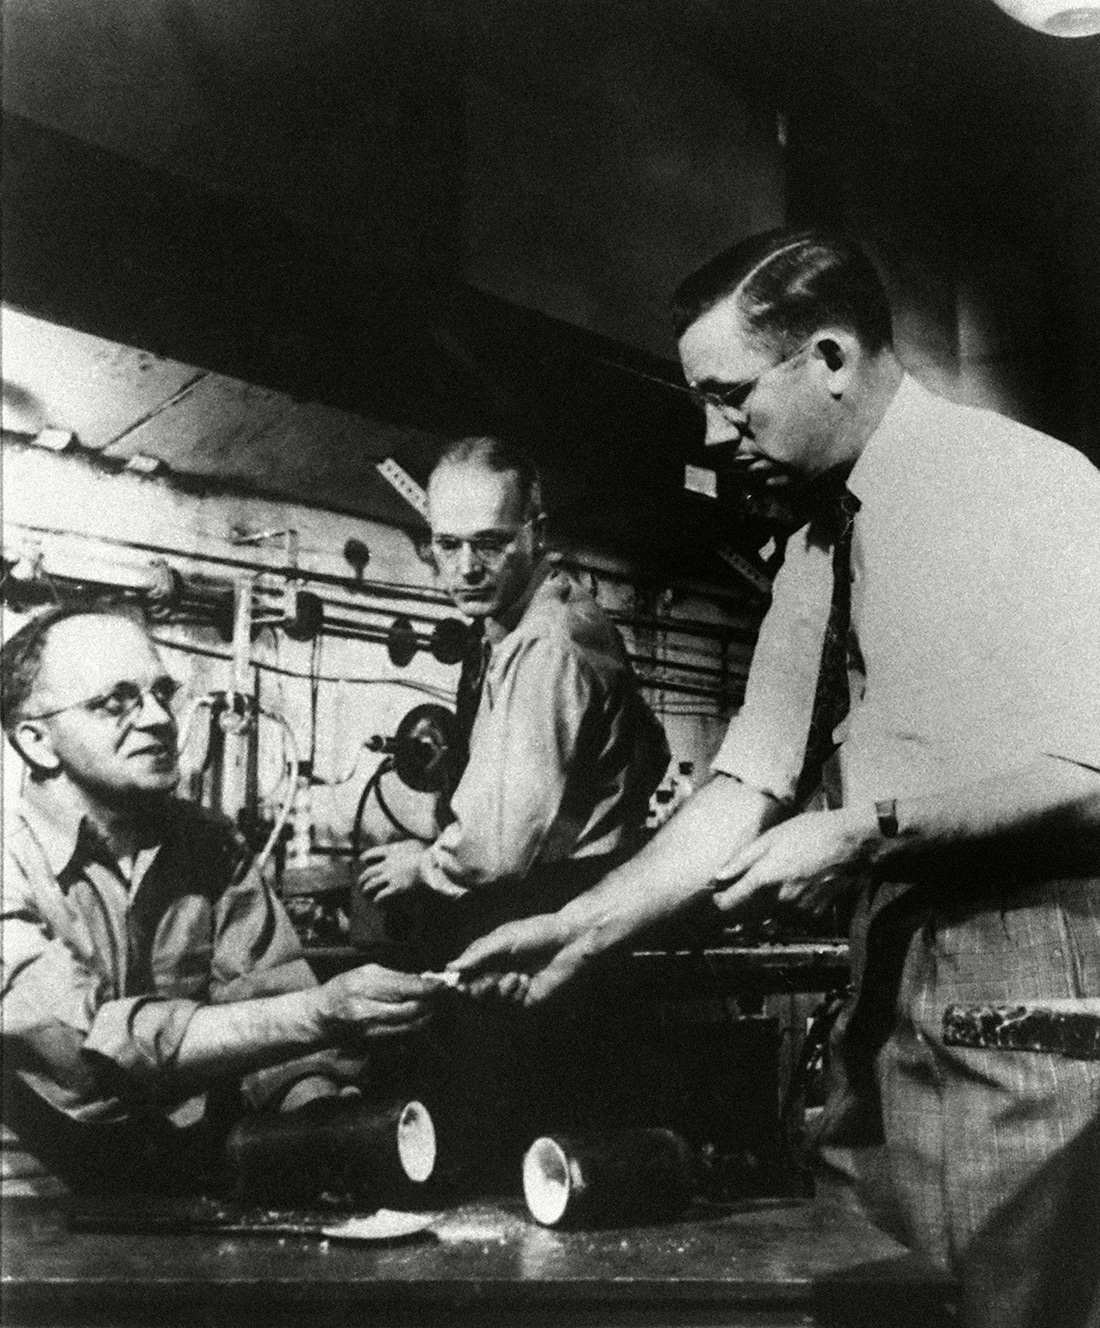 Dr. Roy J. Plunkett, right, holder of the original patent for Teflon, poses with his product and DuPont chemists re-enact the making of the product in one of the company's laboratory. Photo: AP/Shutterstock (6650656a)